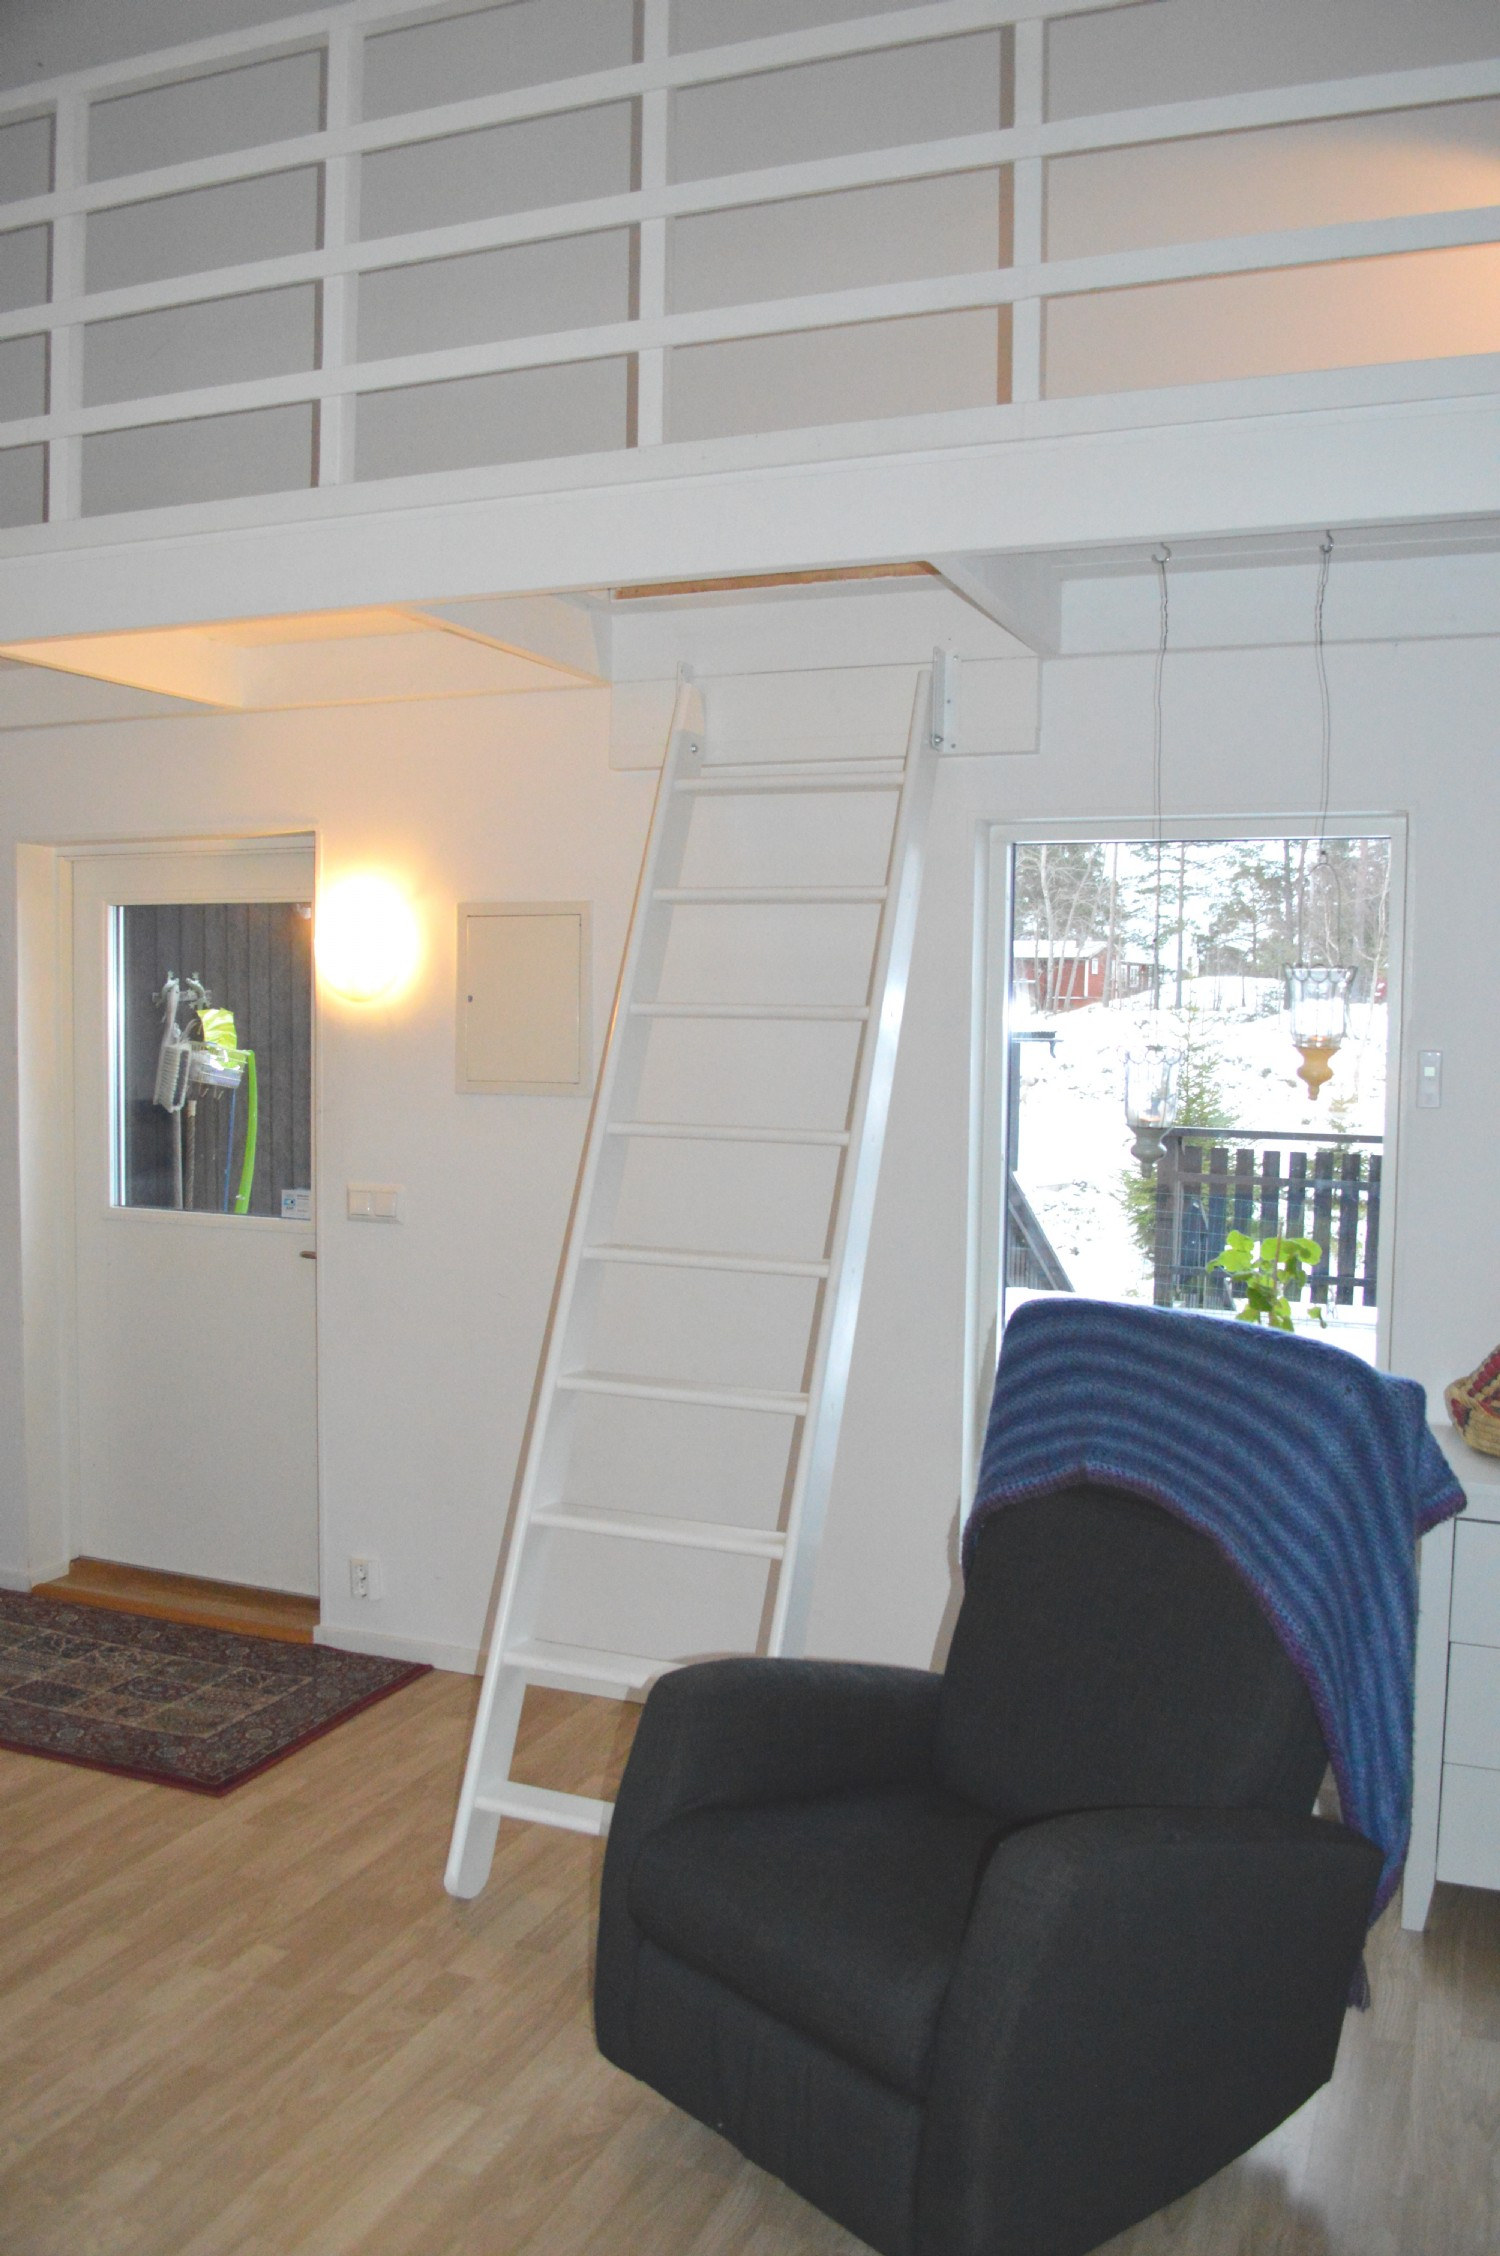 Stege till sovloft/ Ladder to sleeping loft